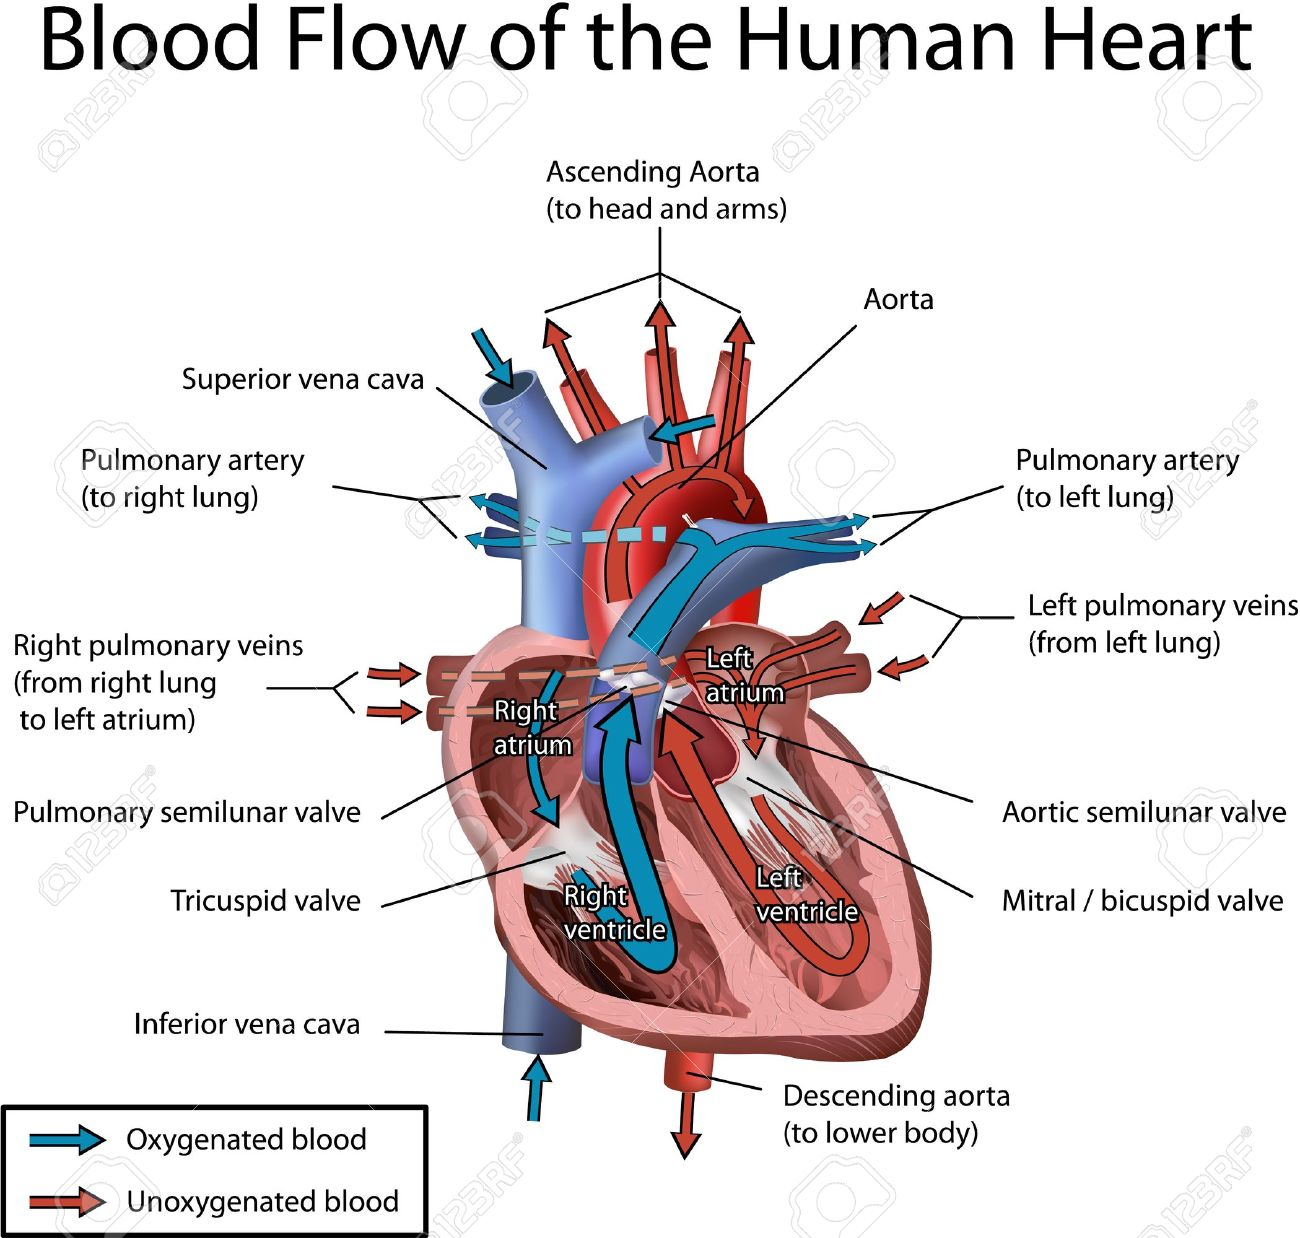 Human Heart Blood Flow Illustration With Annotation Isolated